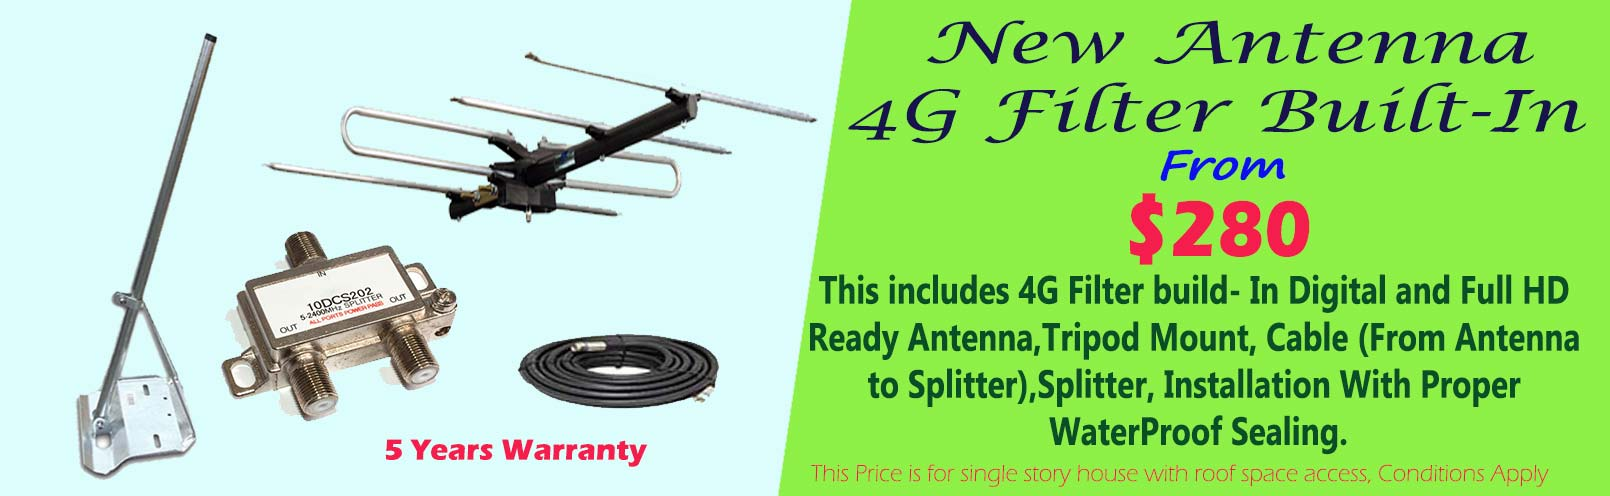 4g antenna installation <a href='https://www.speedytvantennas.com.au/new-tv-antenna'>Read More</a>